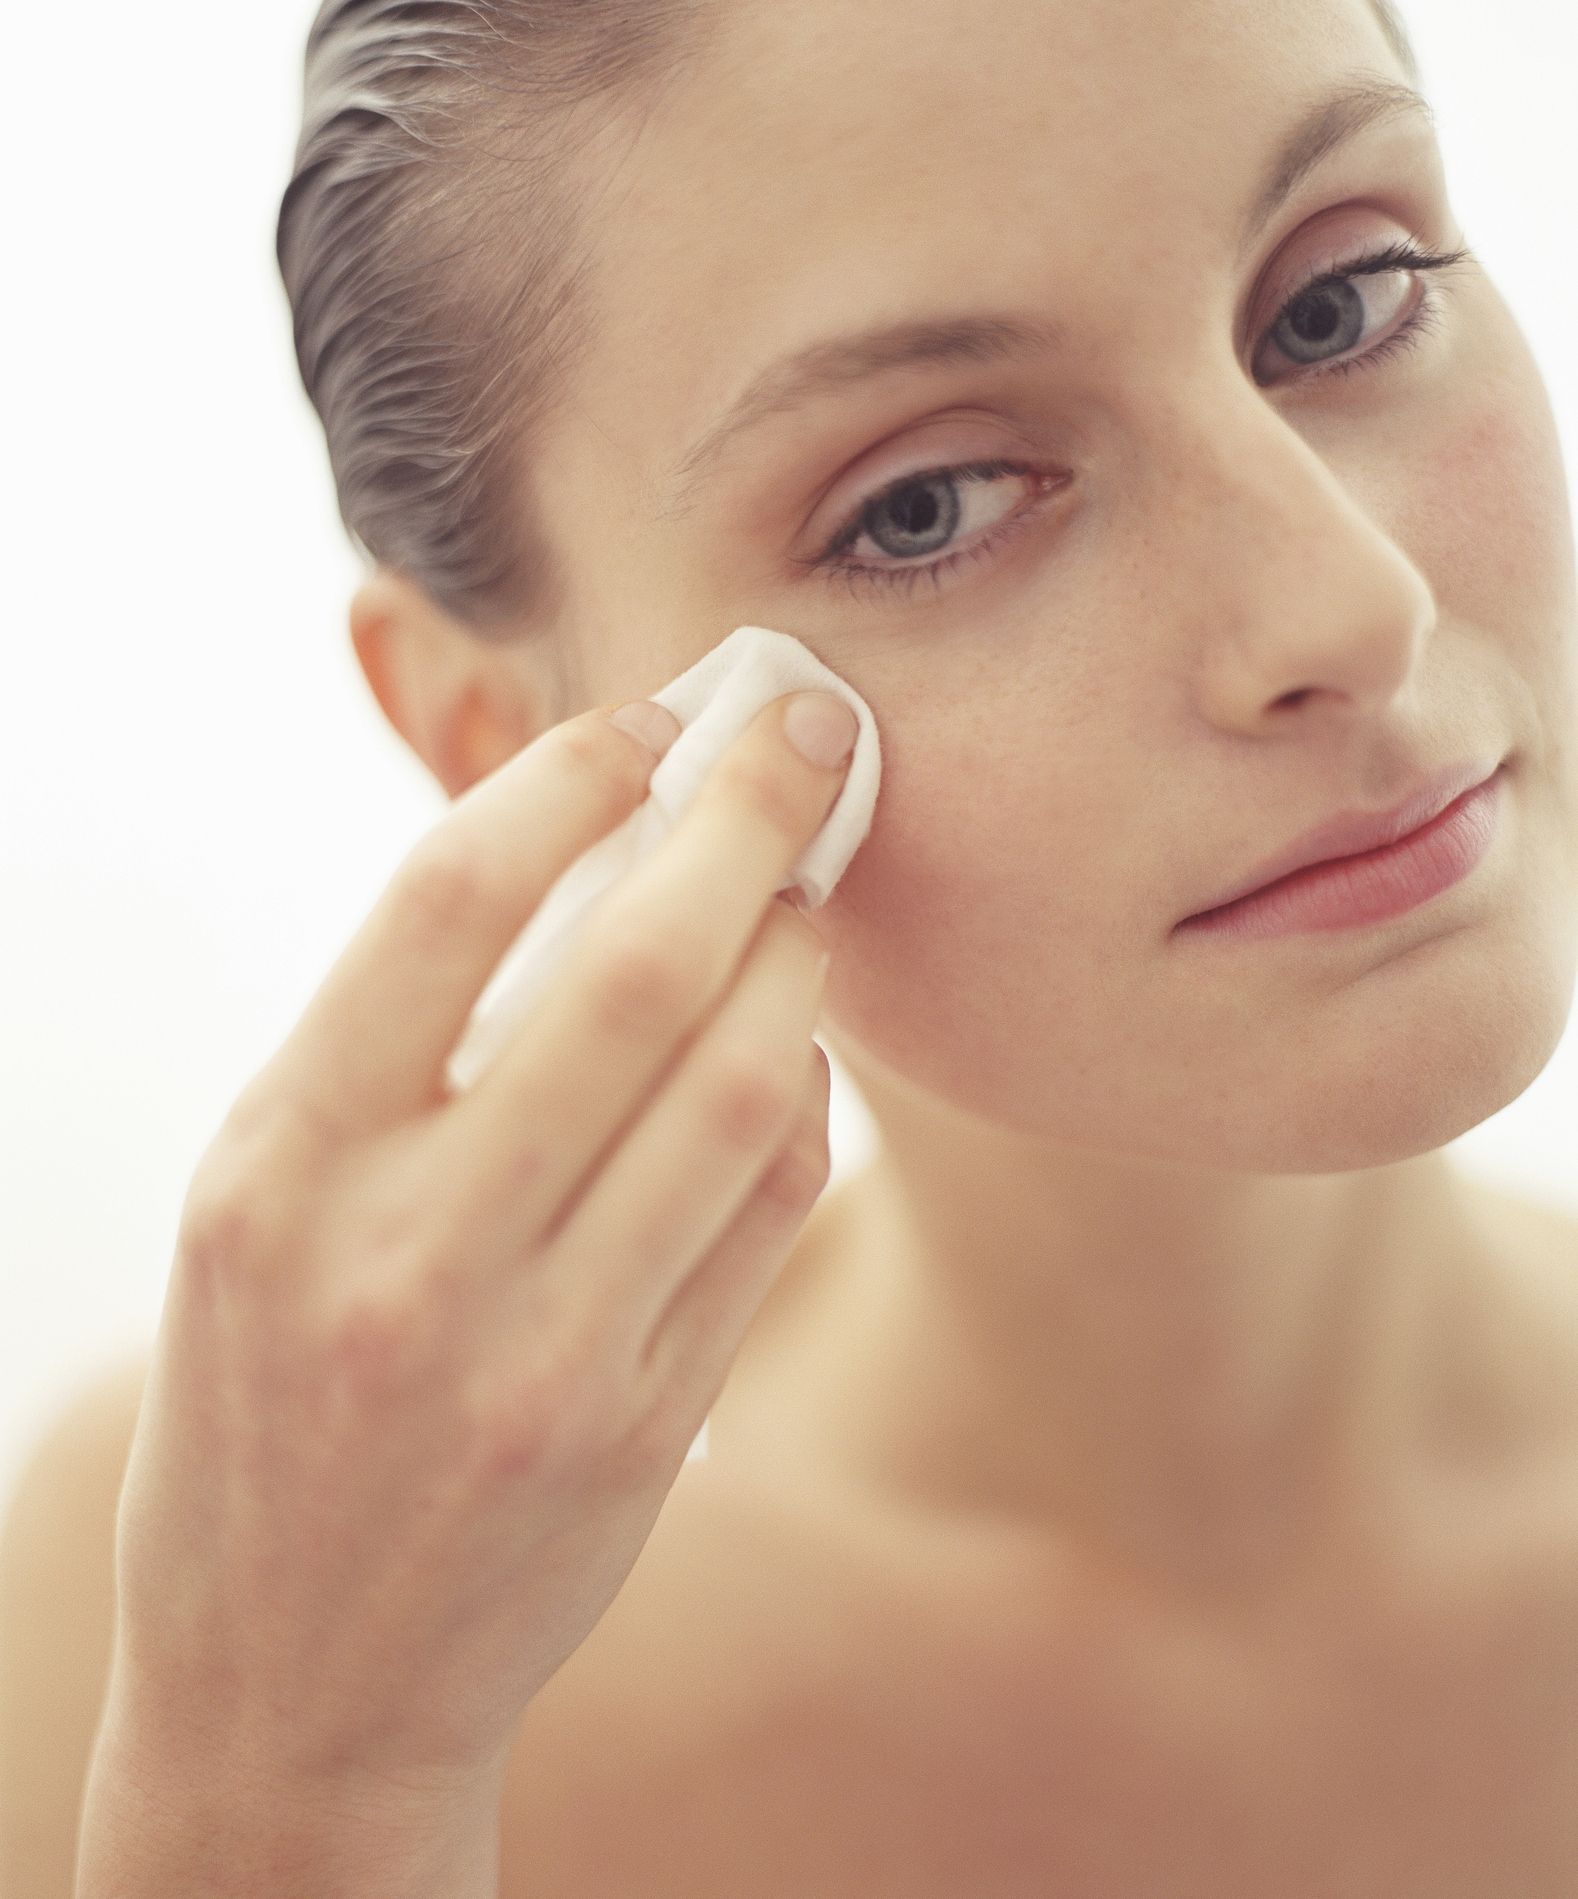 75 best beauty tips - makeup, skincare, and hair advice for women